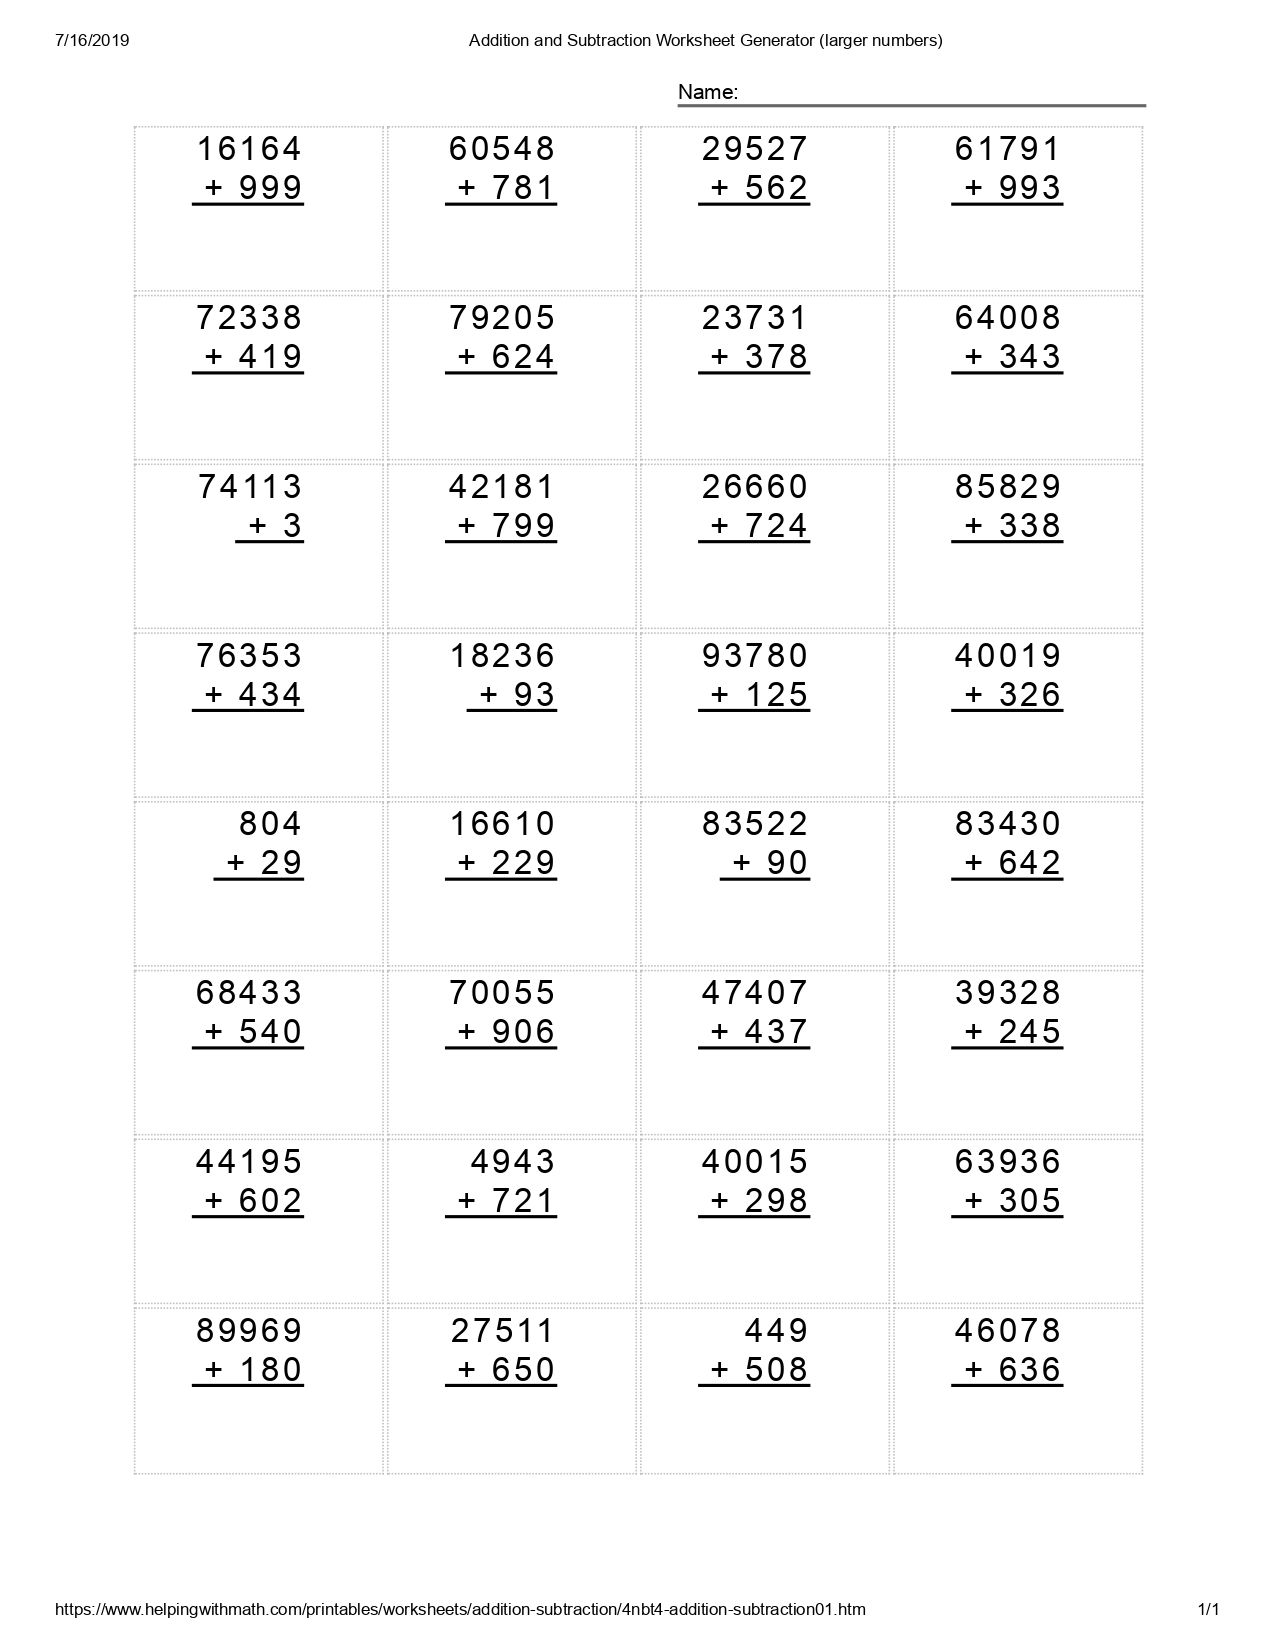 Best 10 Addition And Subtraction Worksheet With Images